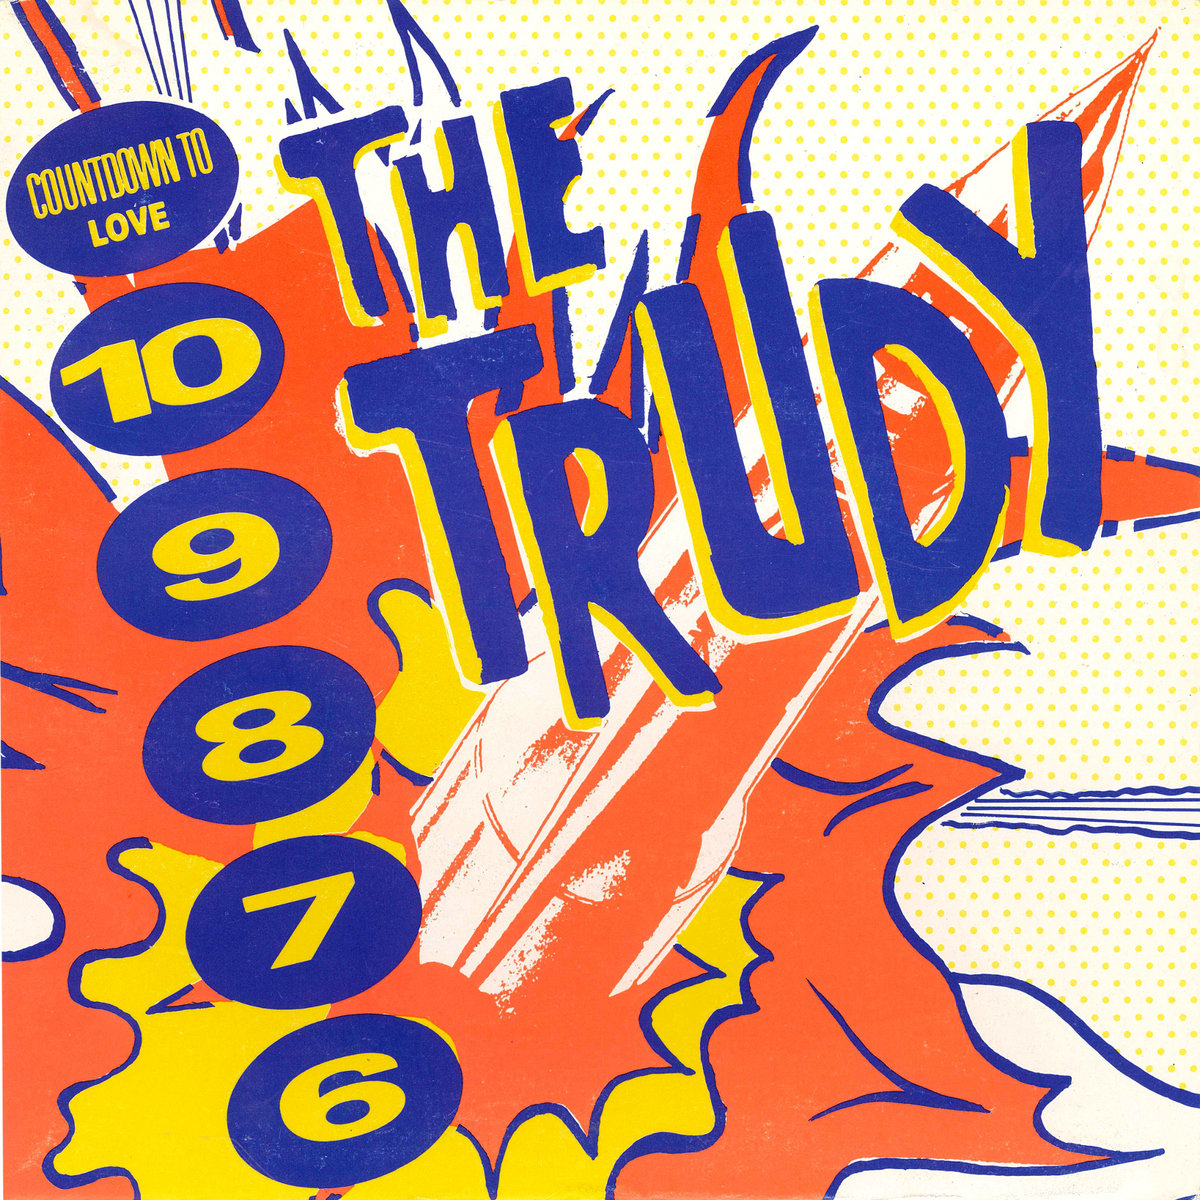 Countdown To Love by The Trudy